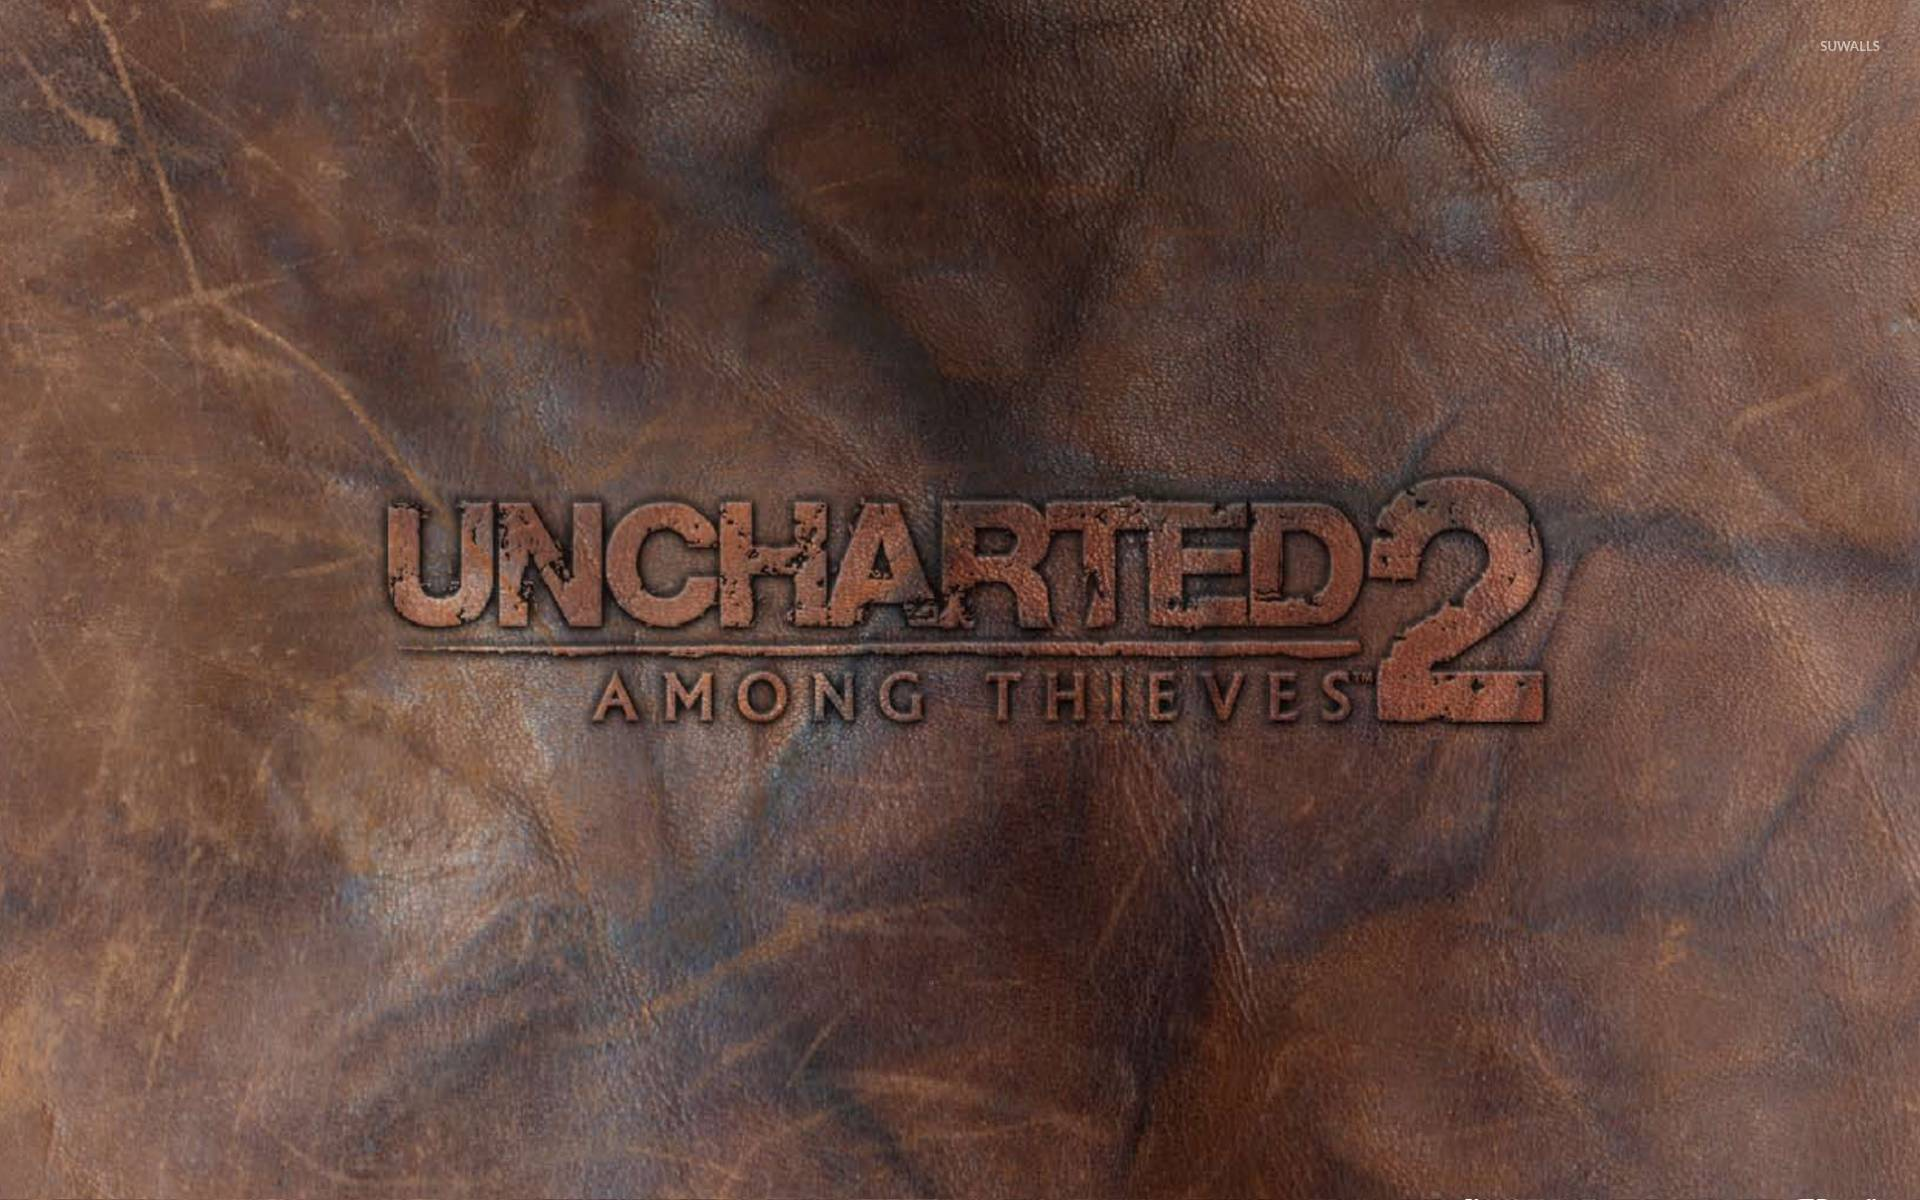 Uncharted 2 Among Thieves 3 Wallpaper Game Wallpapers 10121